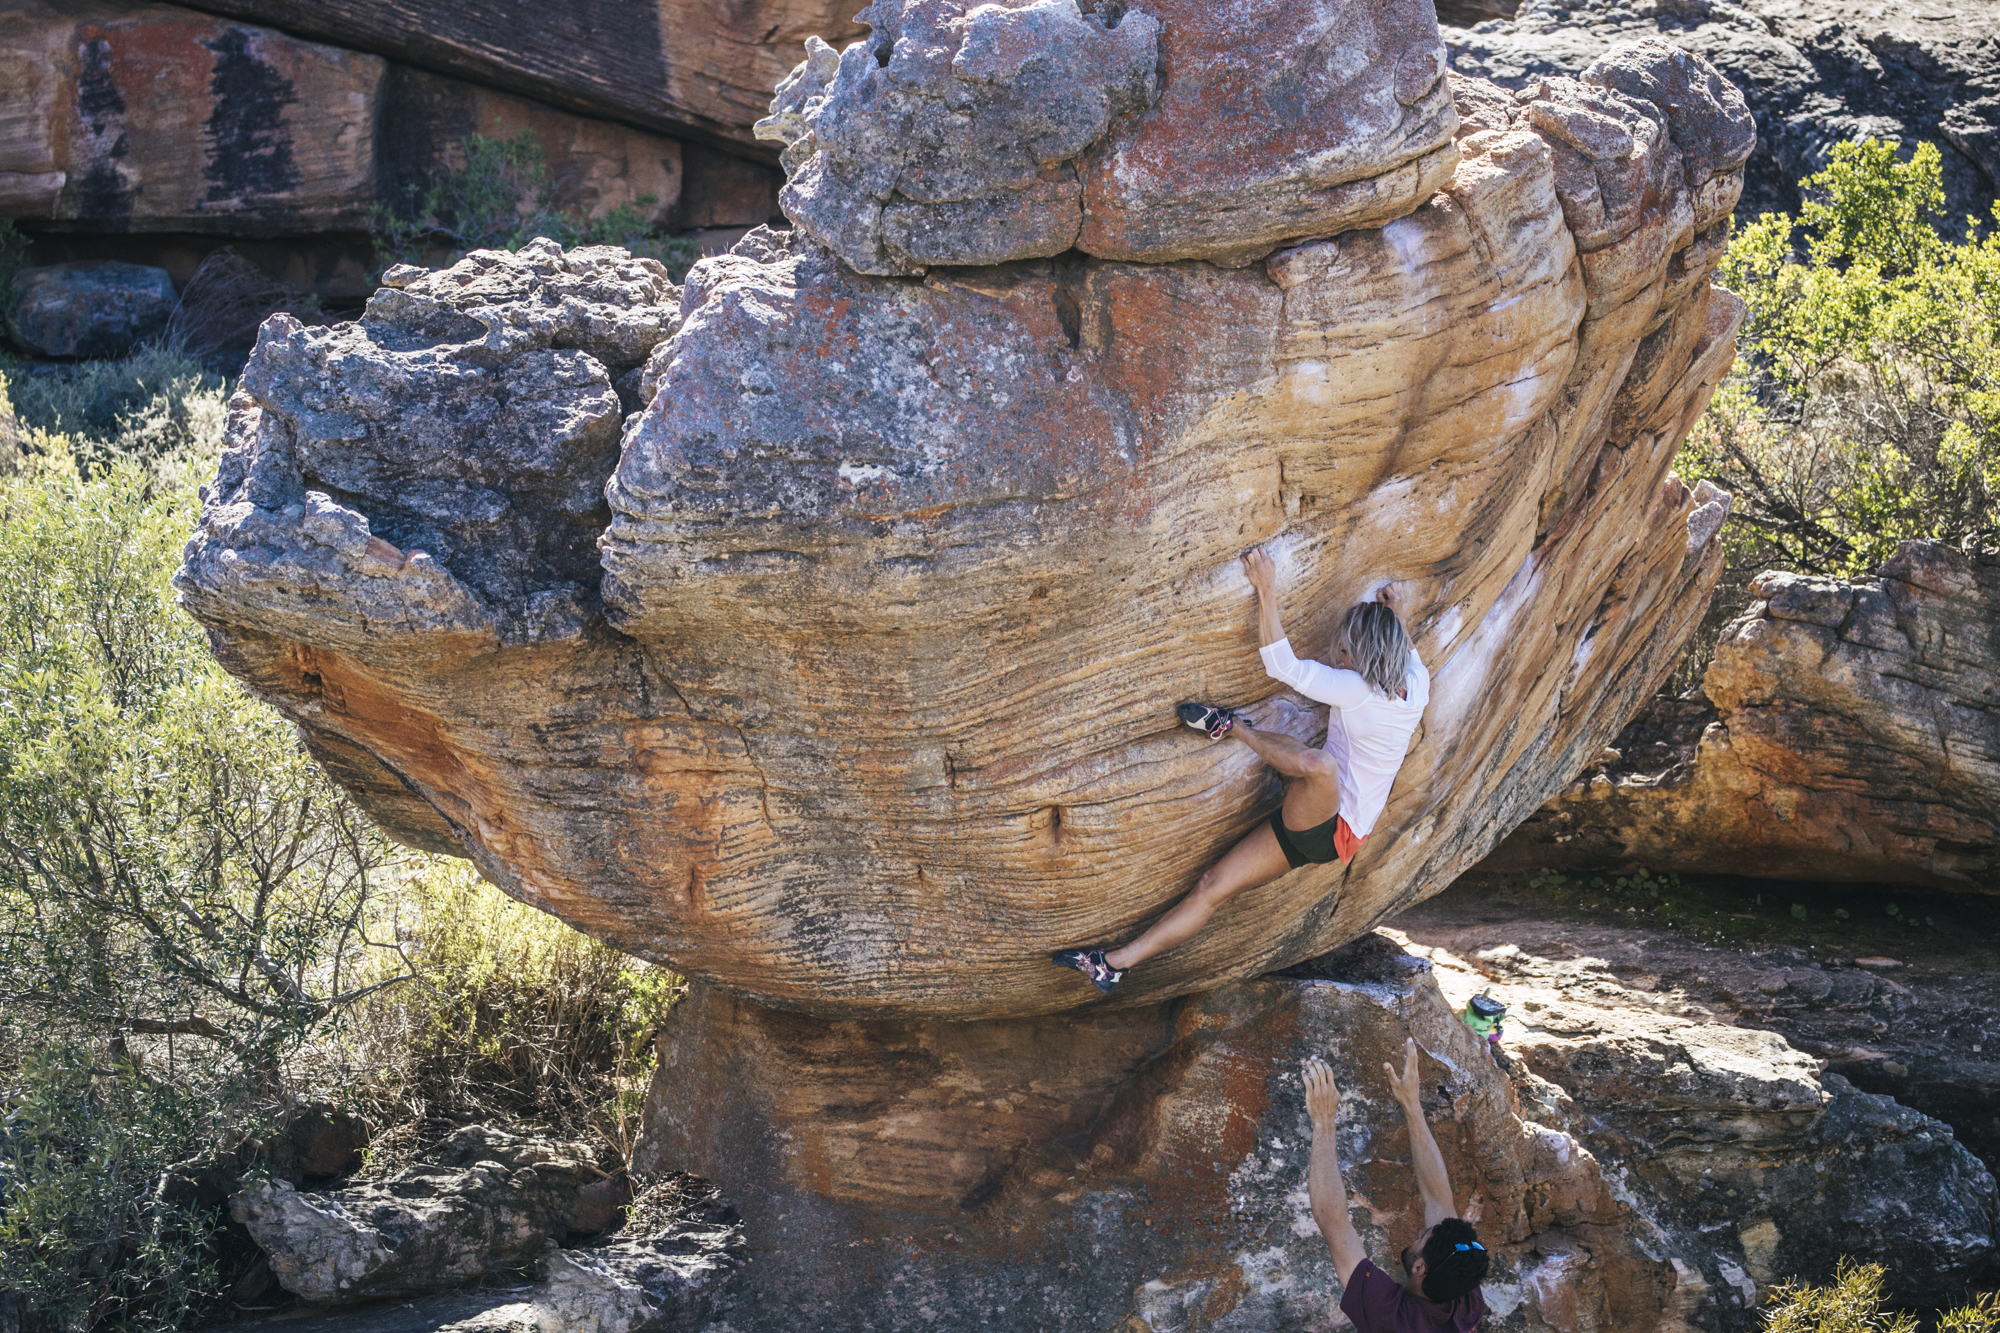 The Hatchling, 8A